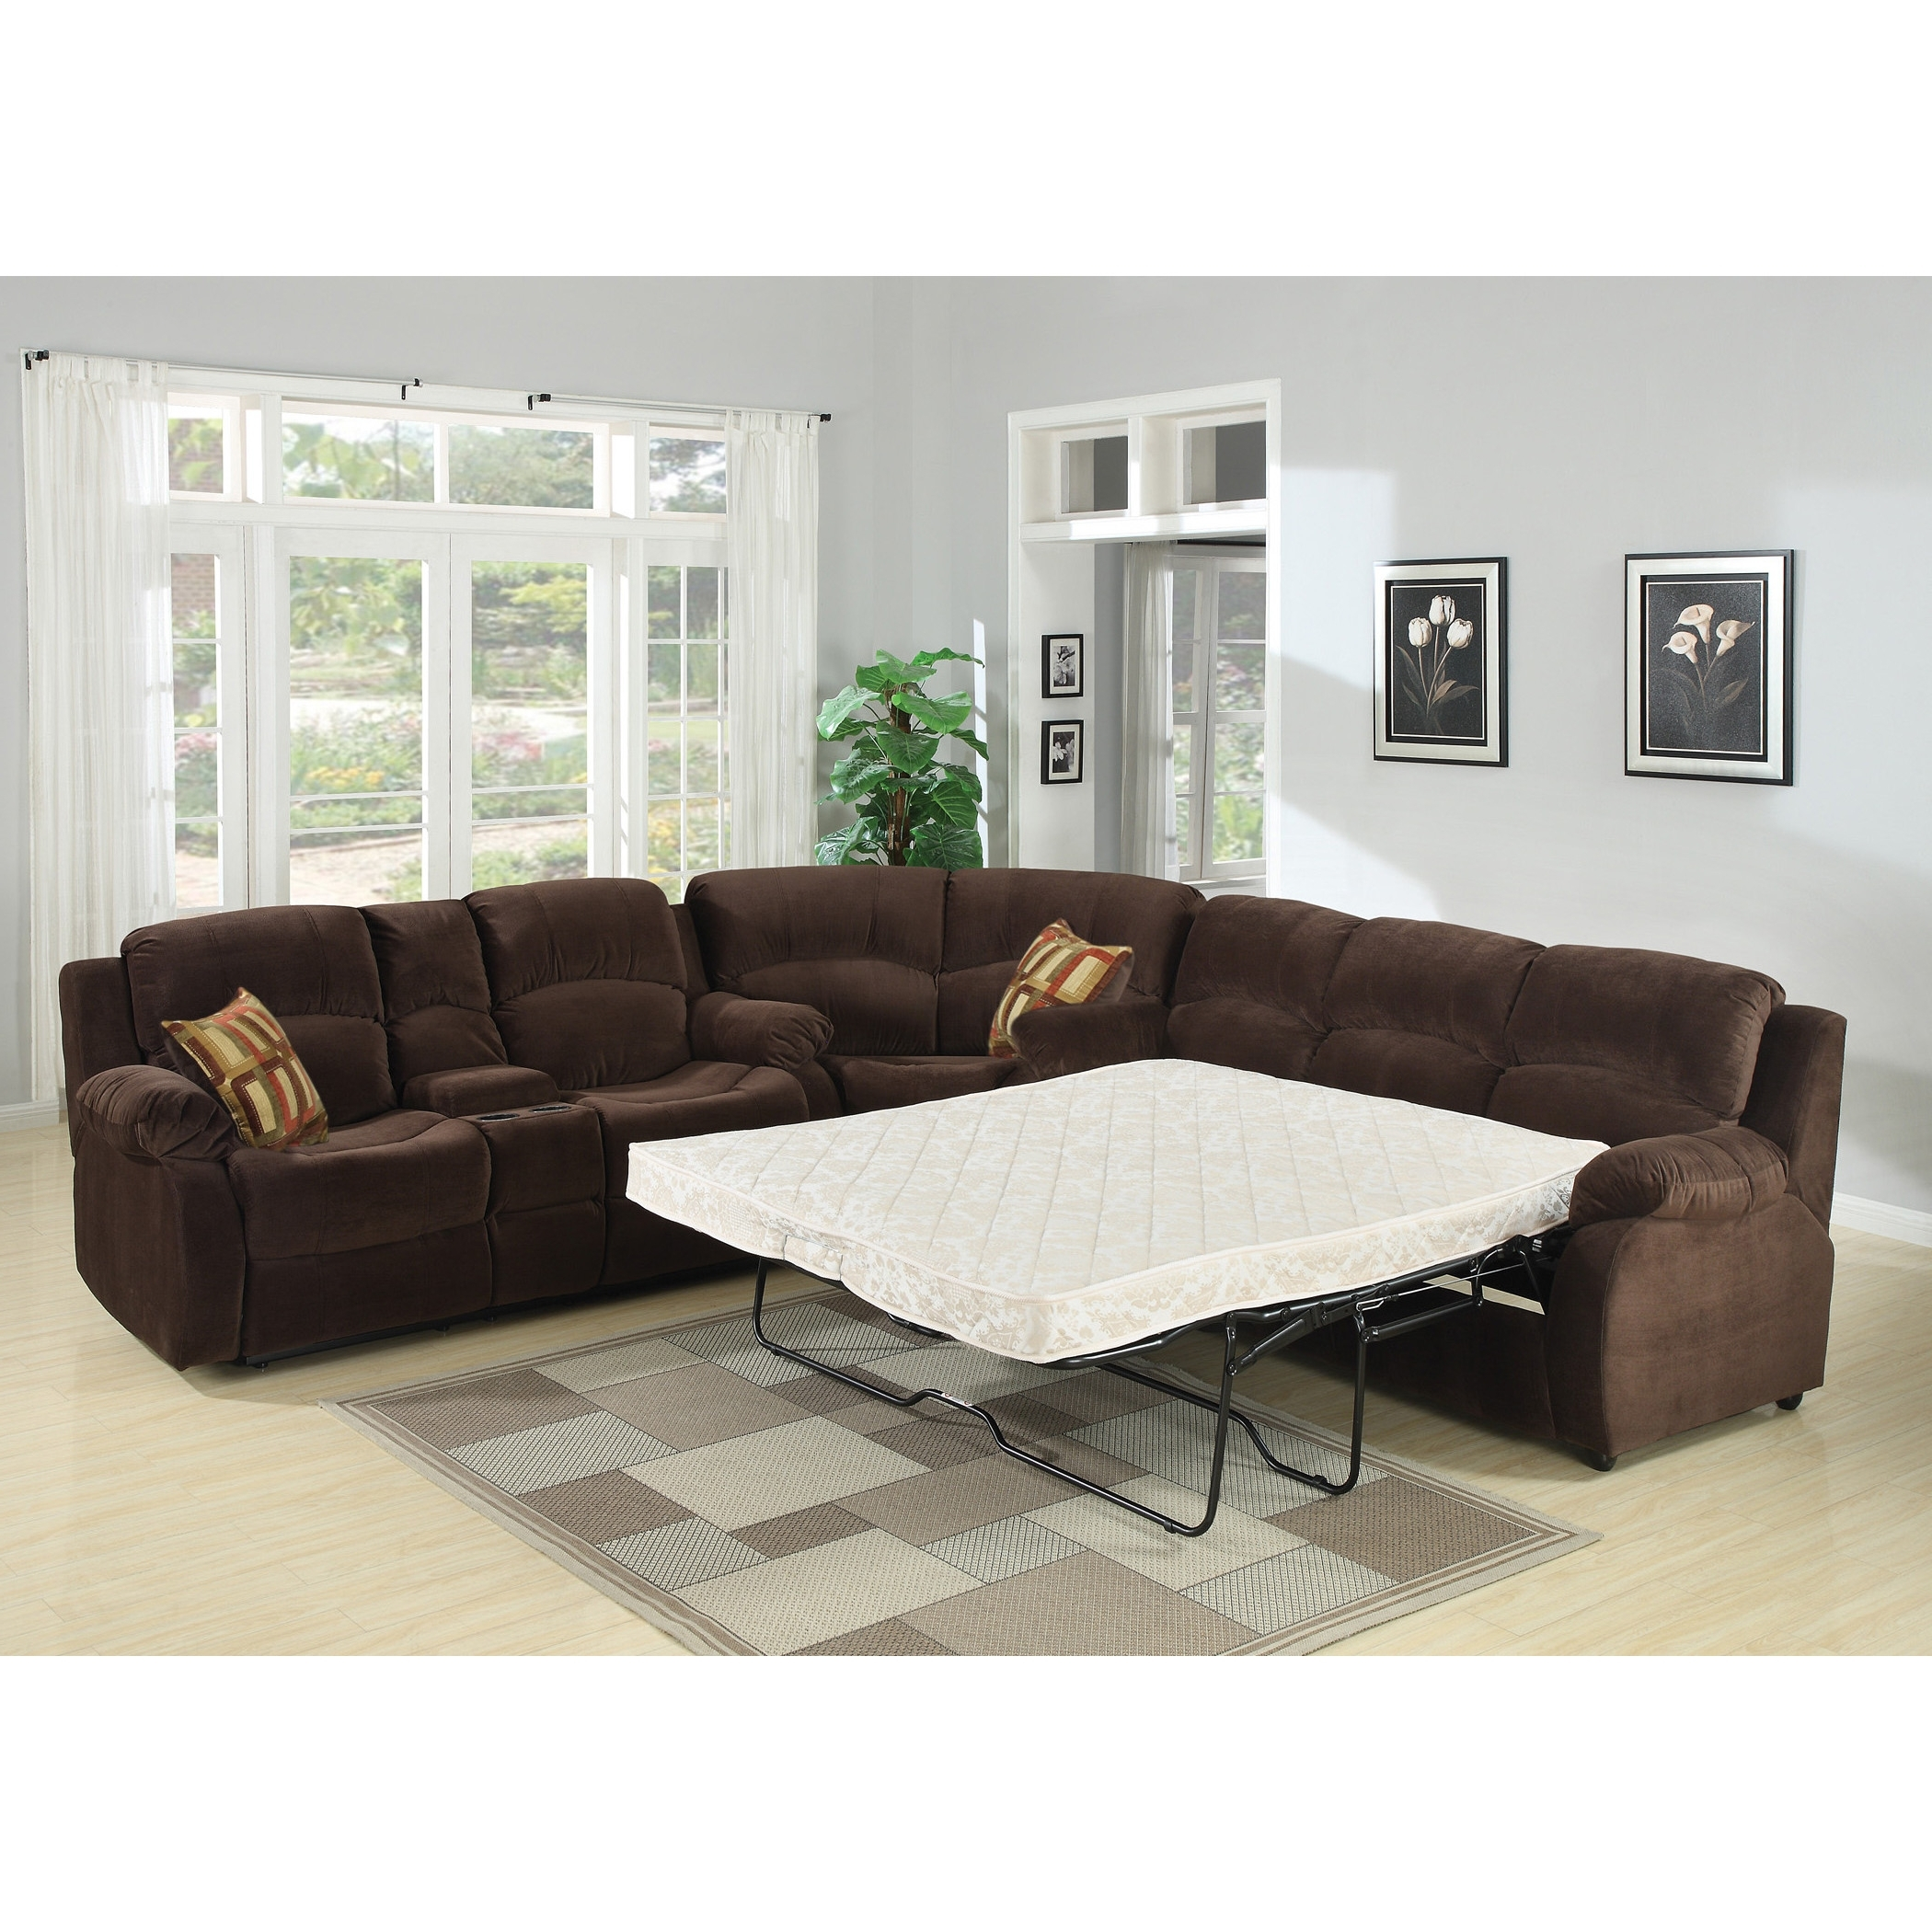 Sofa : Wonderful Sectional Sofa Queen Bed Russ Sectional Sofa Regarding Most Current Sectional Sofas With Queen Size Sleeper (View 11 of 15)